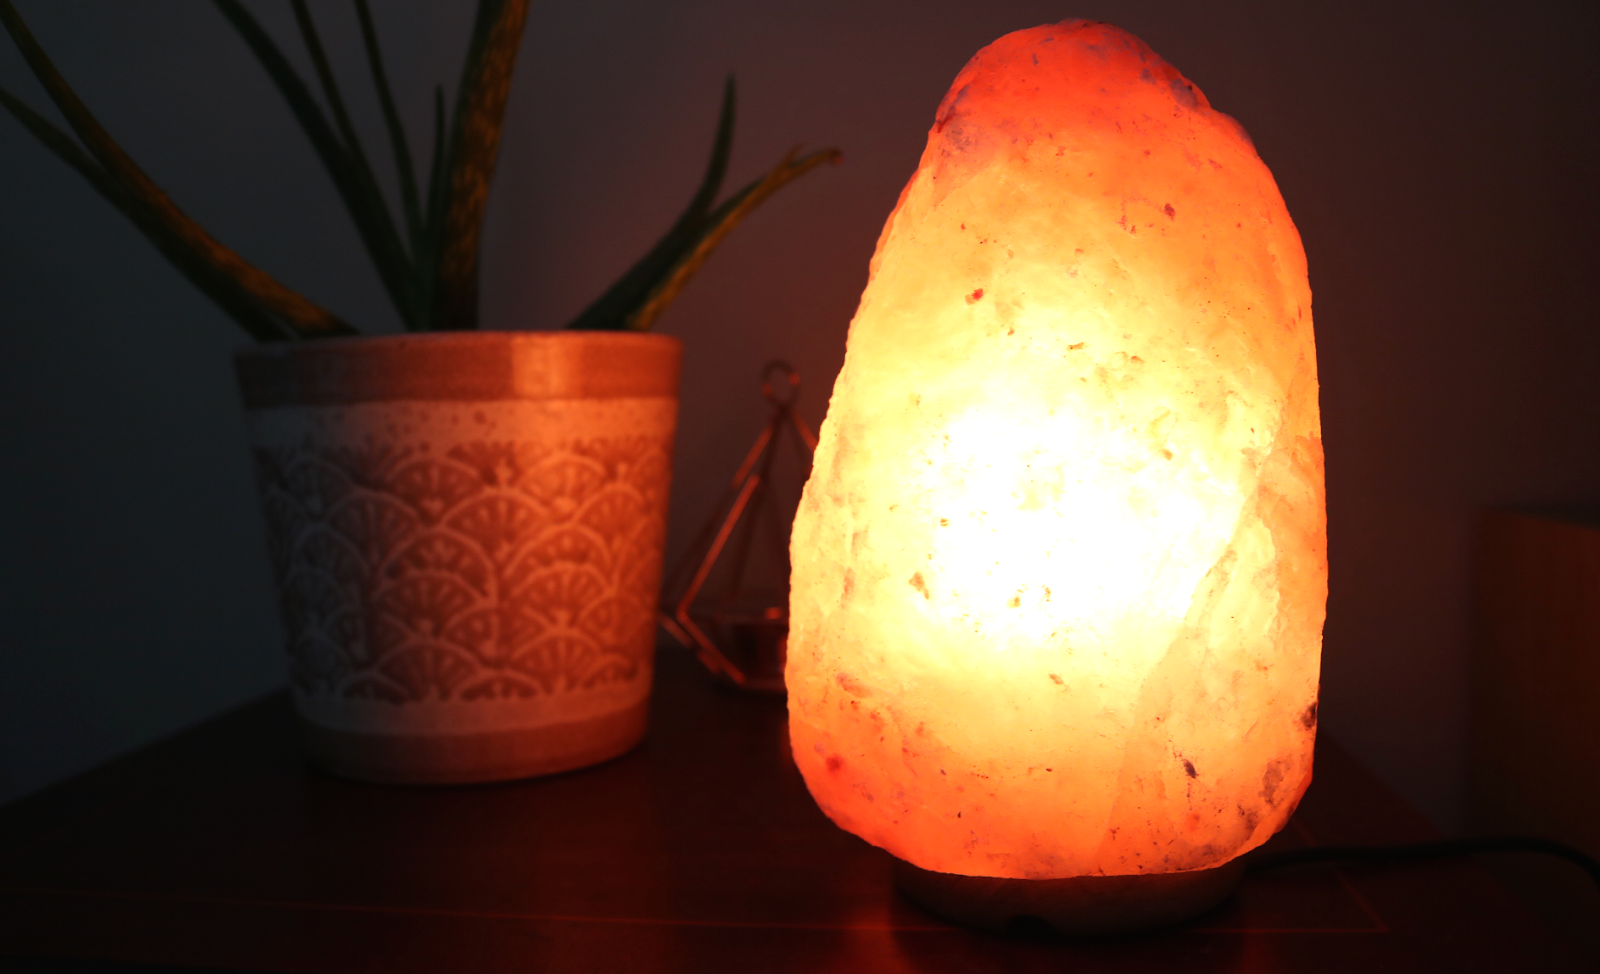 Health & Lifestyle: 4 Reasons That Everyone Should Have a Salt Lamp